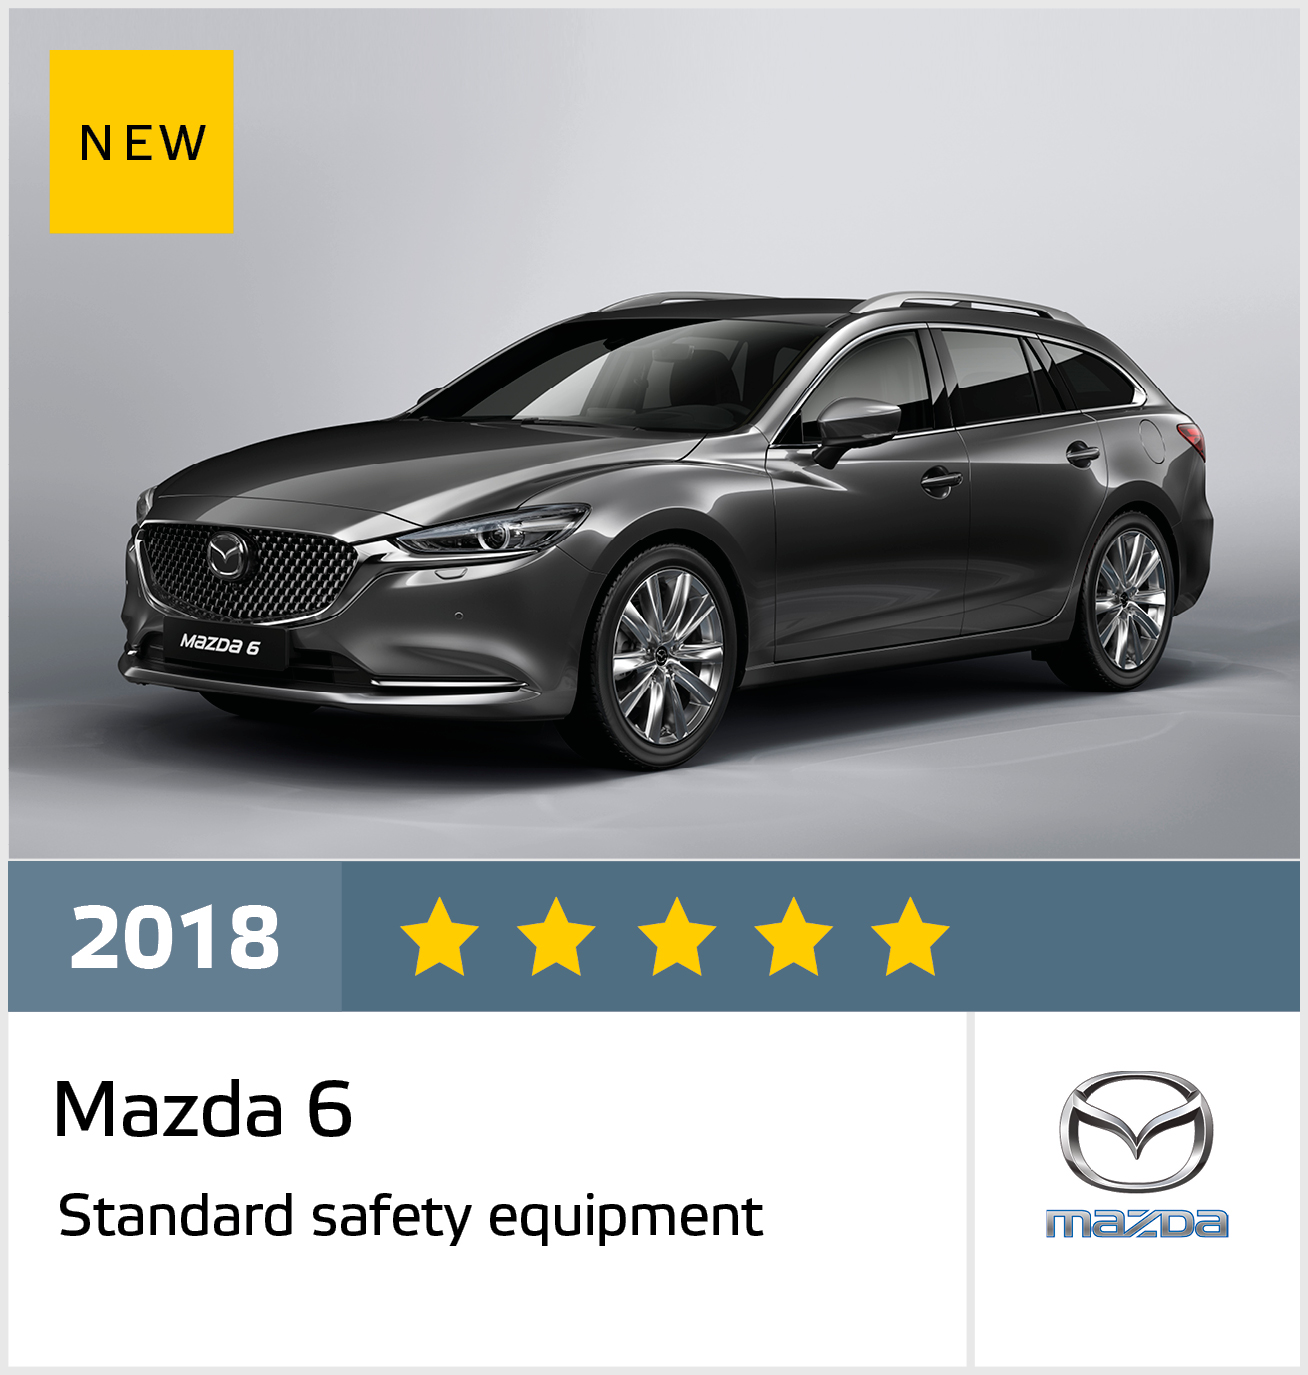 small resolution of official mazda 6 safety rating wiring diagram also saab 9 5 as well 2016 mazda 6 touring on 2003